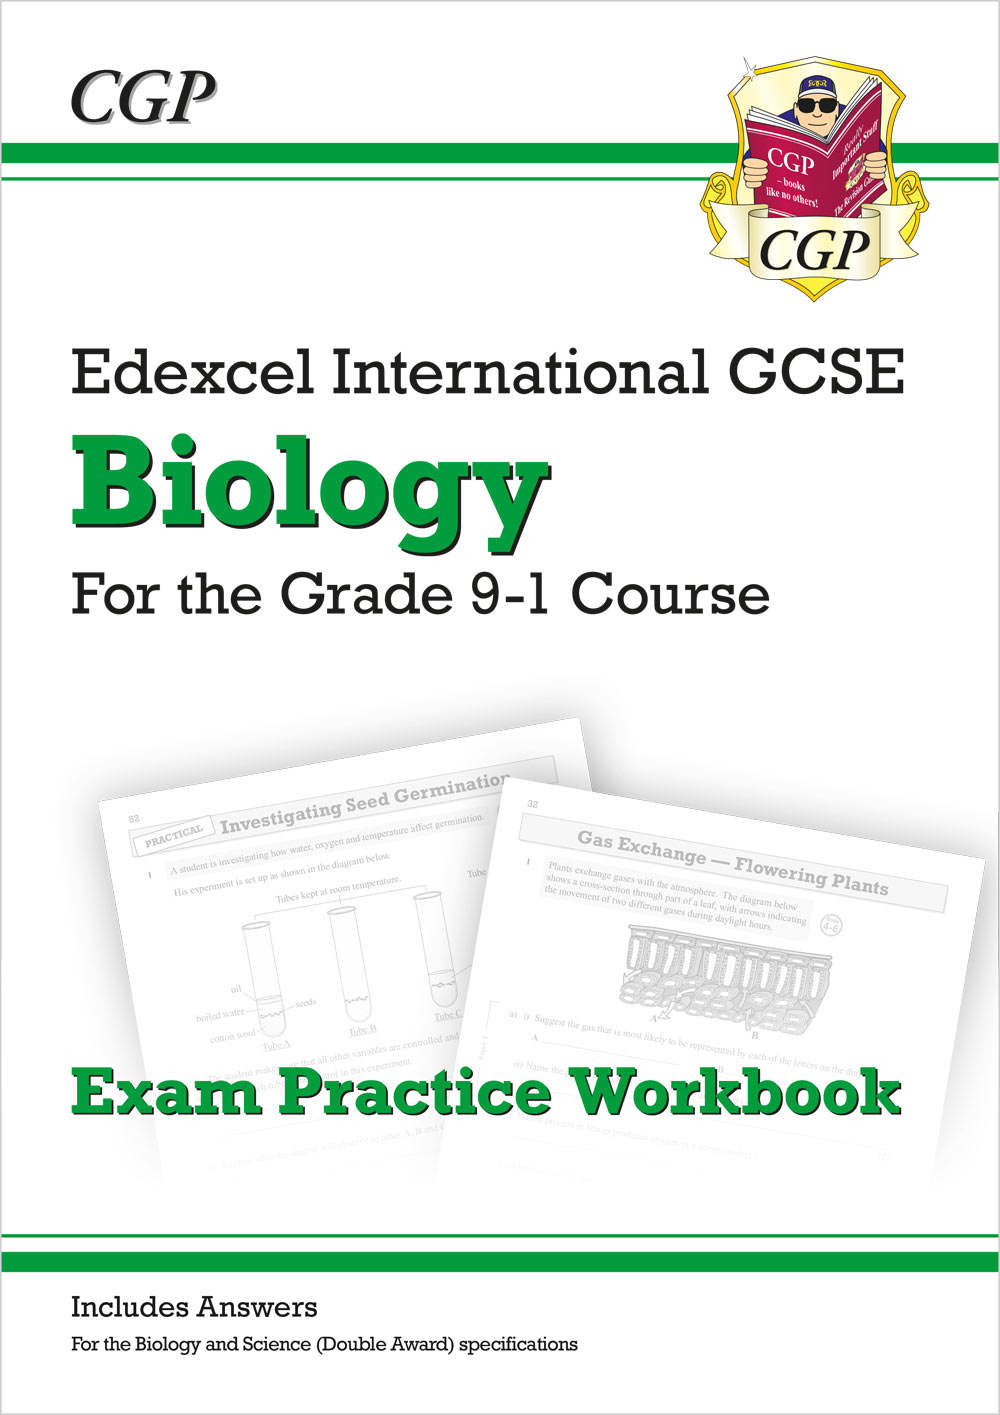 BEQI42 - New Grade 9-1 Edexcel International GCSE Biology: Exam Practice Workbook (includes Answers)